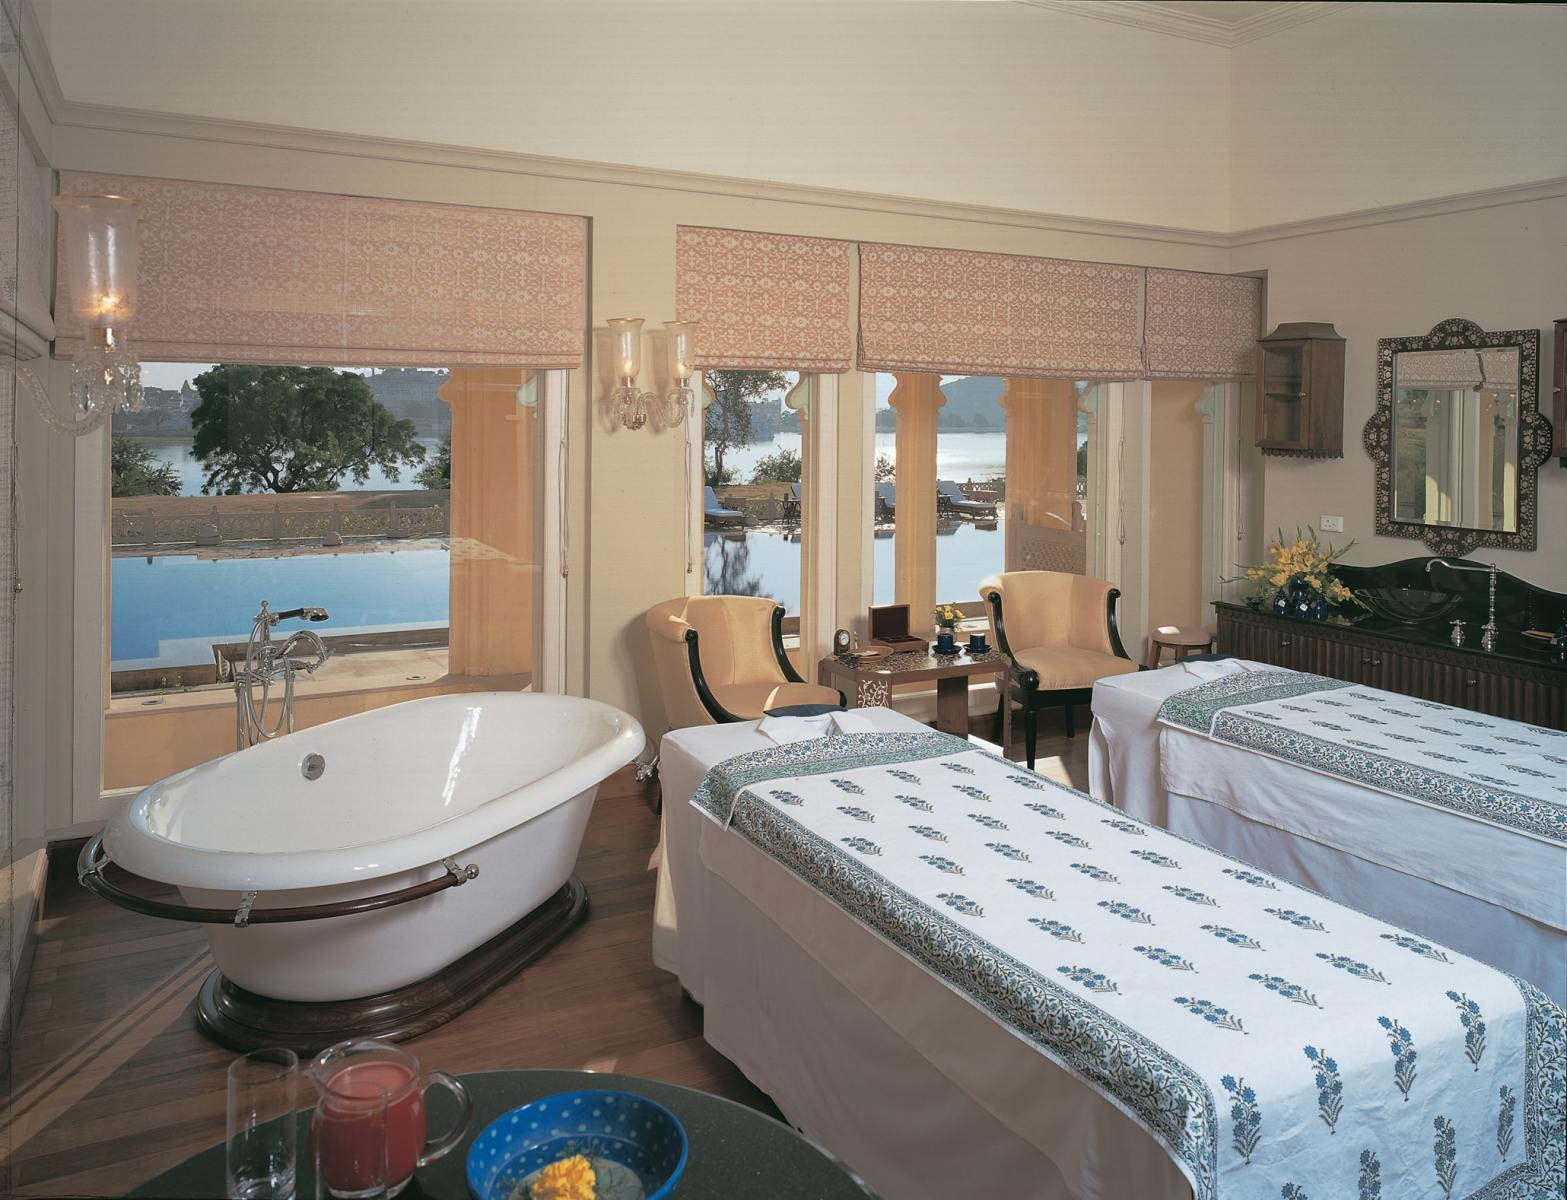 025-The-Oberoi-Udaivilas-Spa-Suite-min